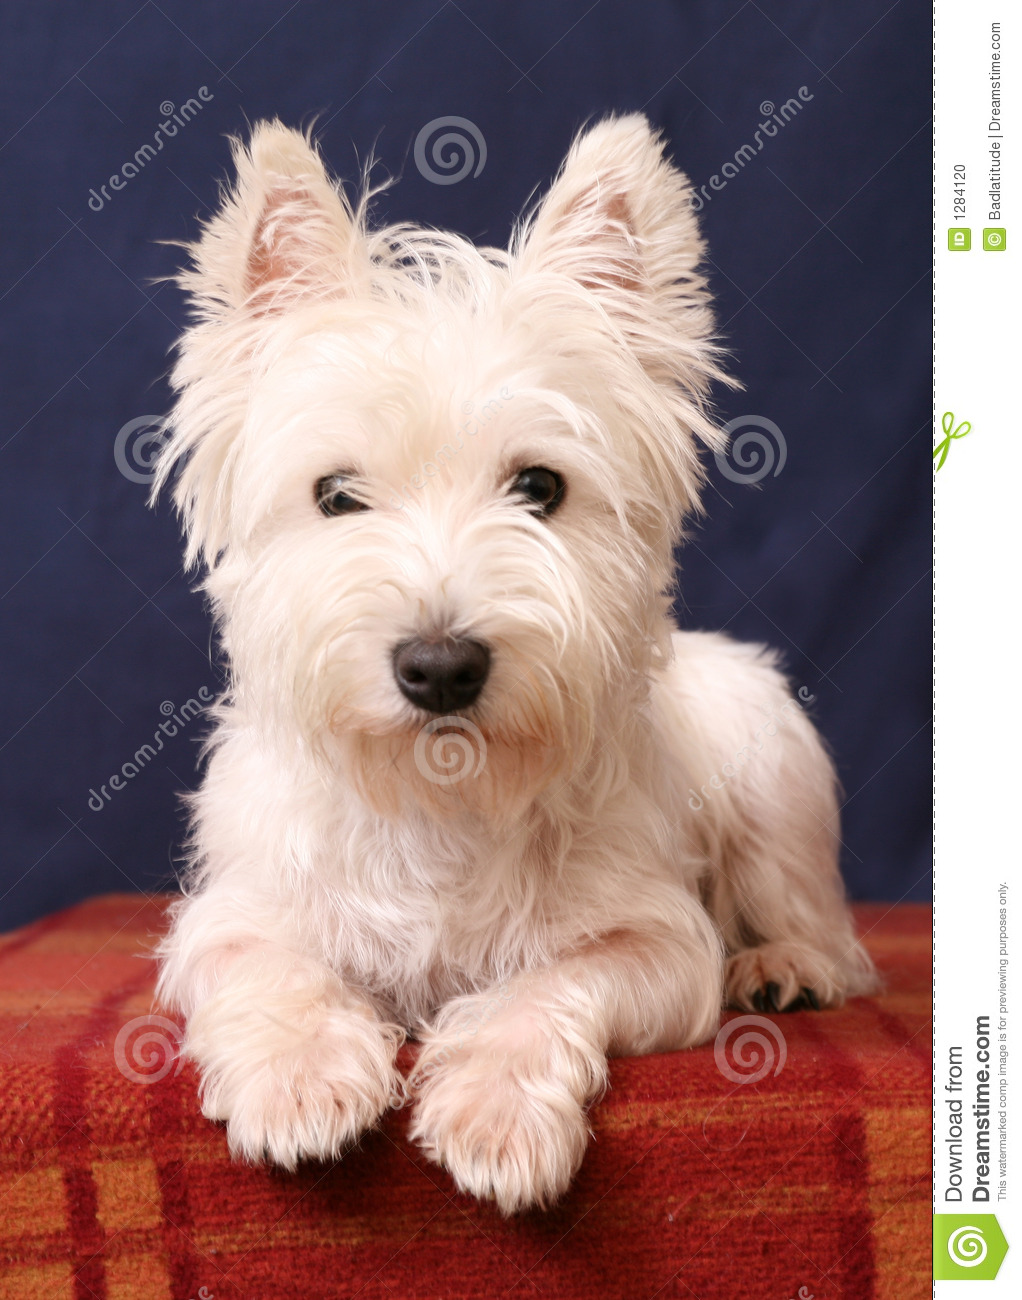 West Highland White Terrier clipart #6, Download drawings